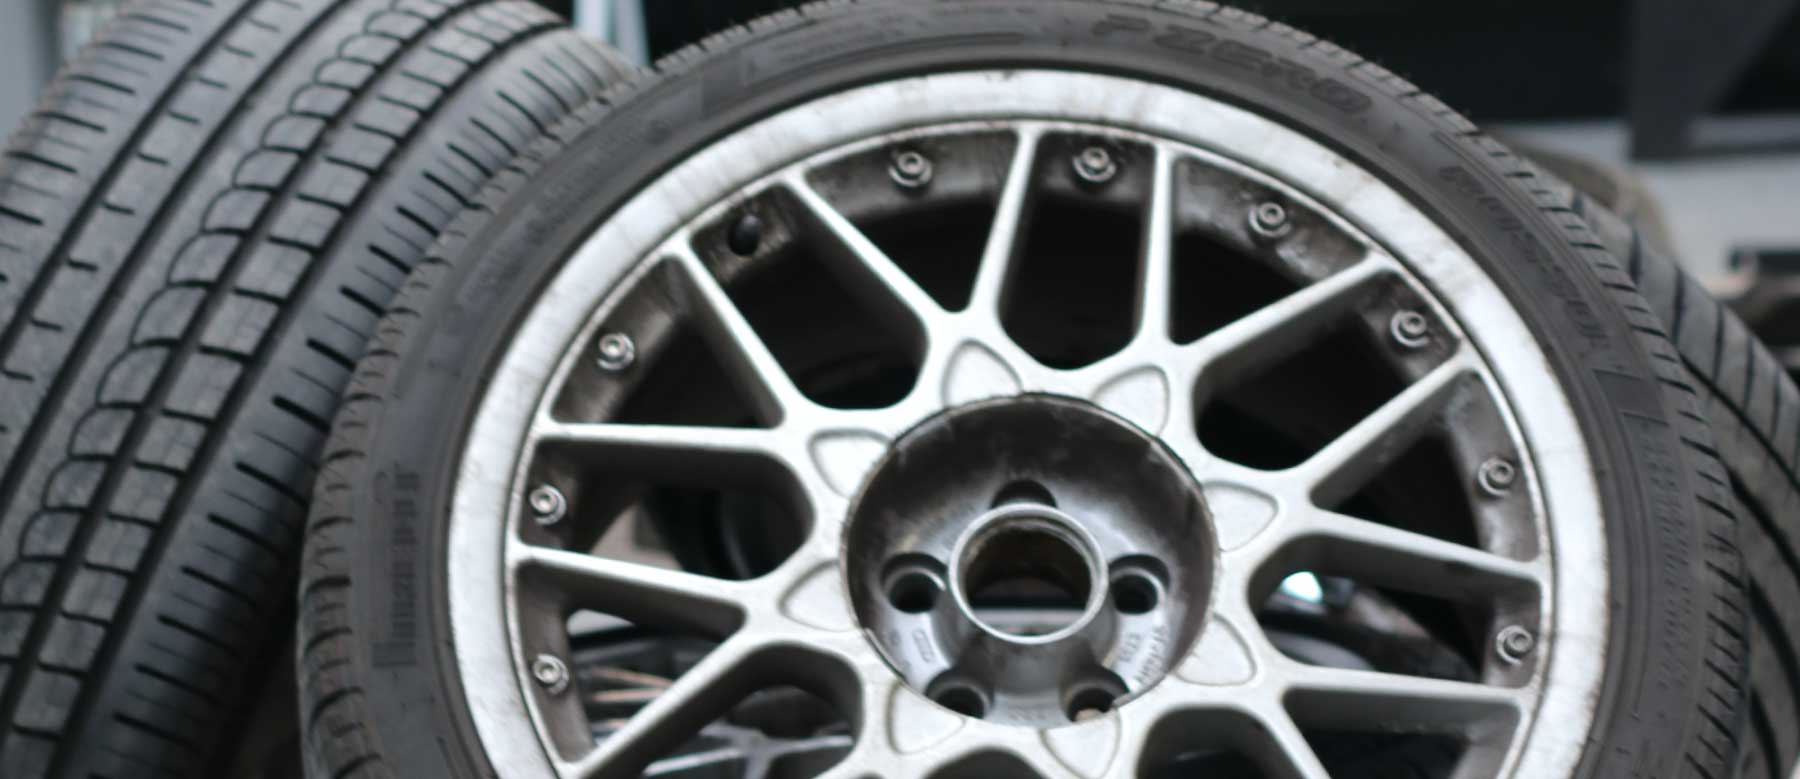 Vass-Tech carry out MOT's and can change your tyres